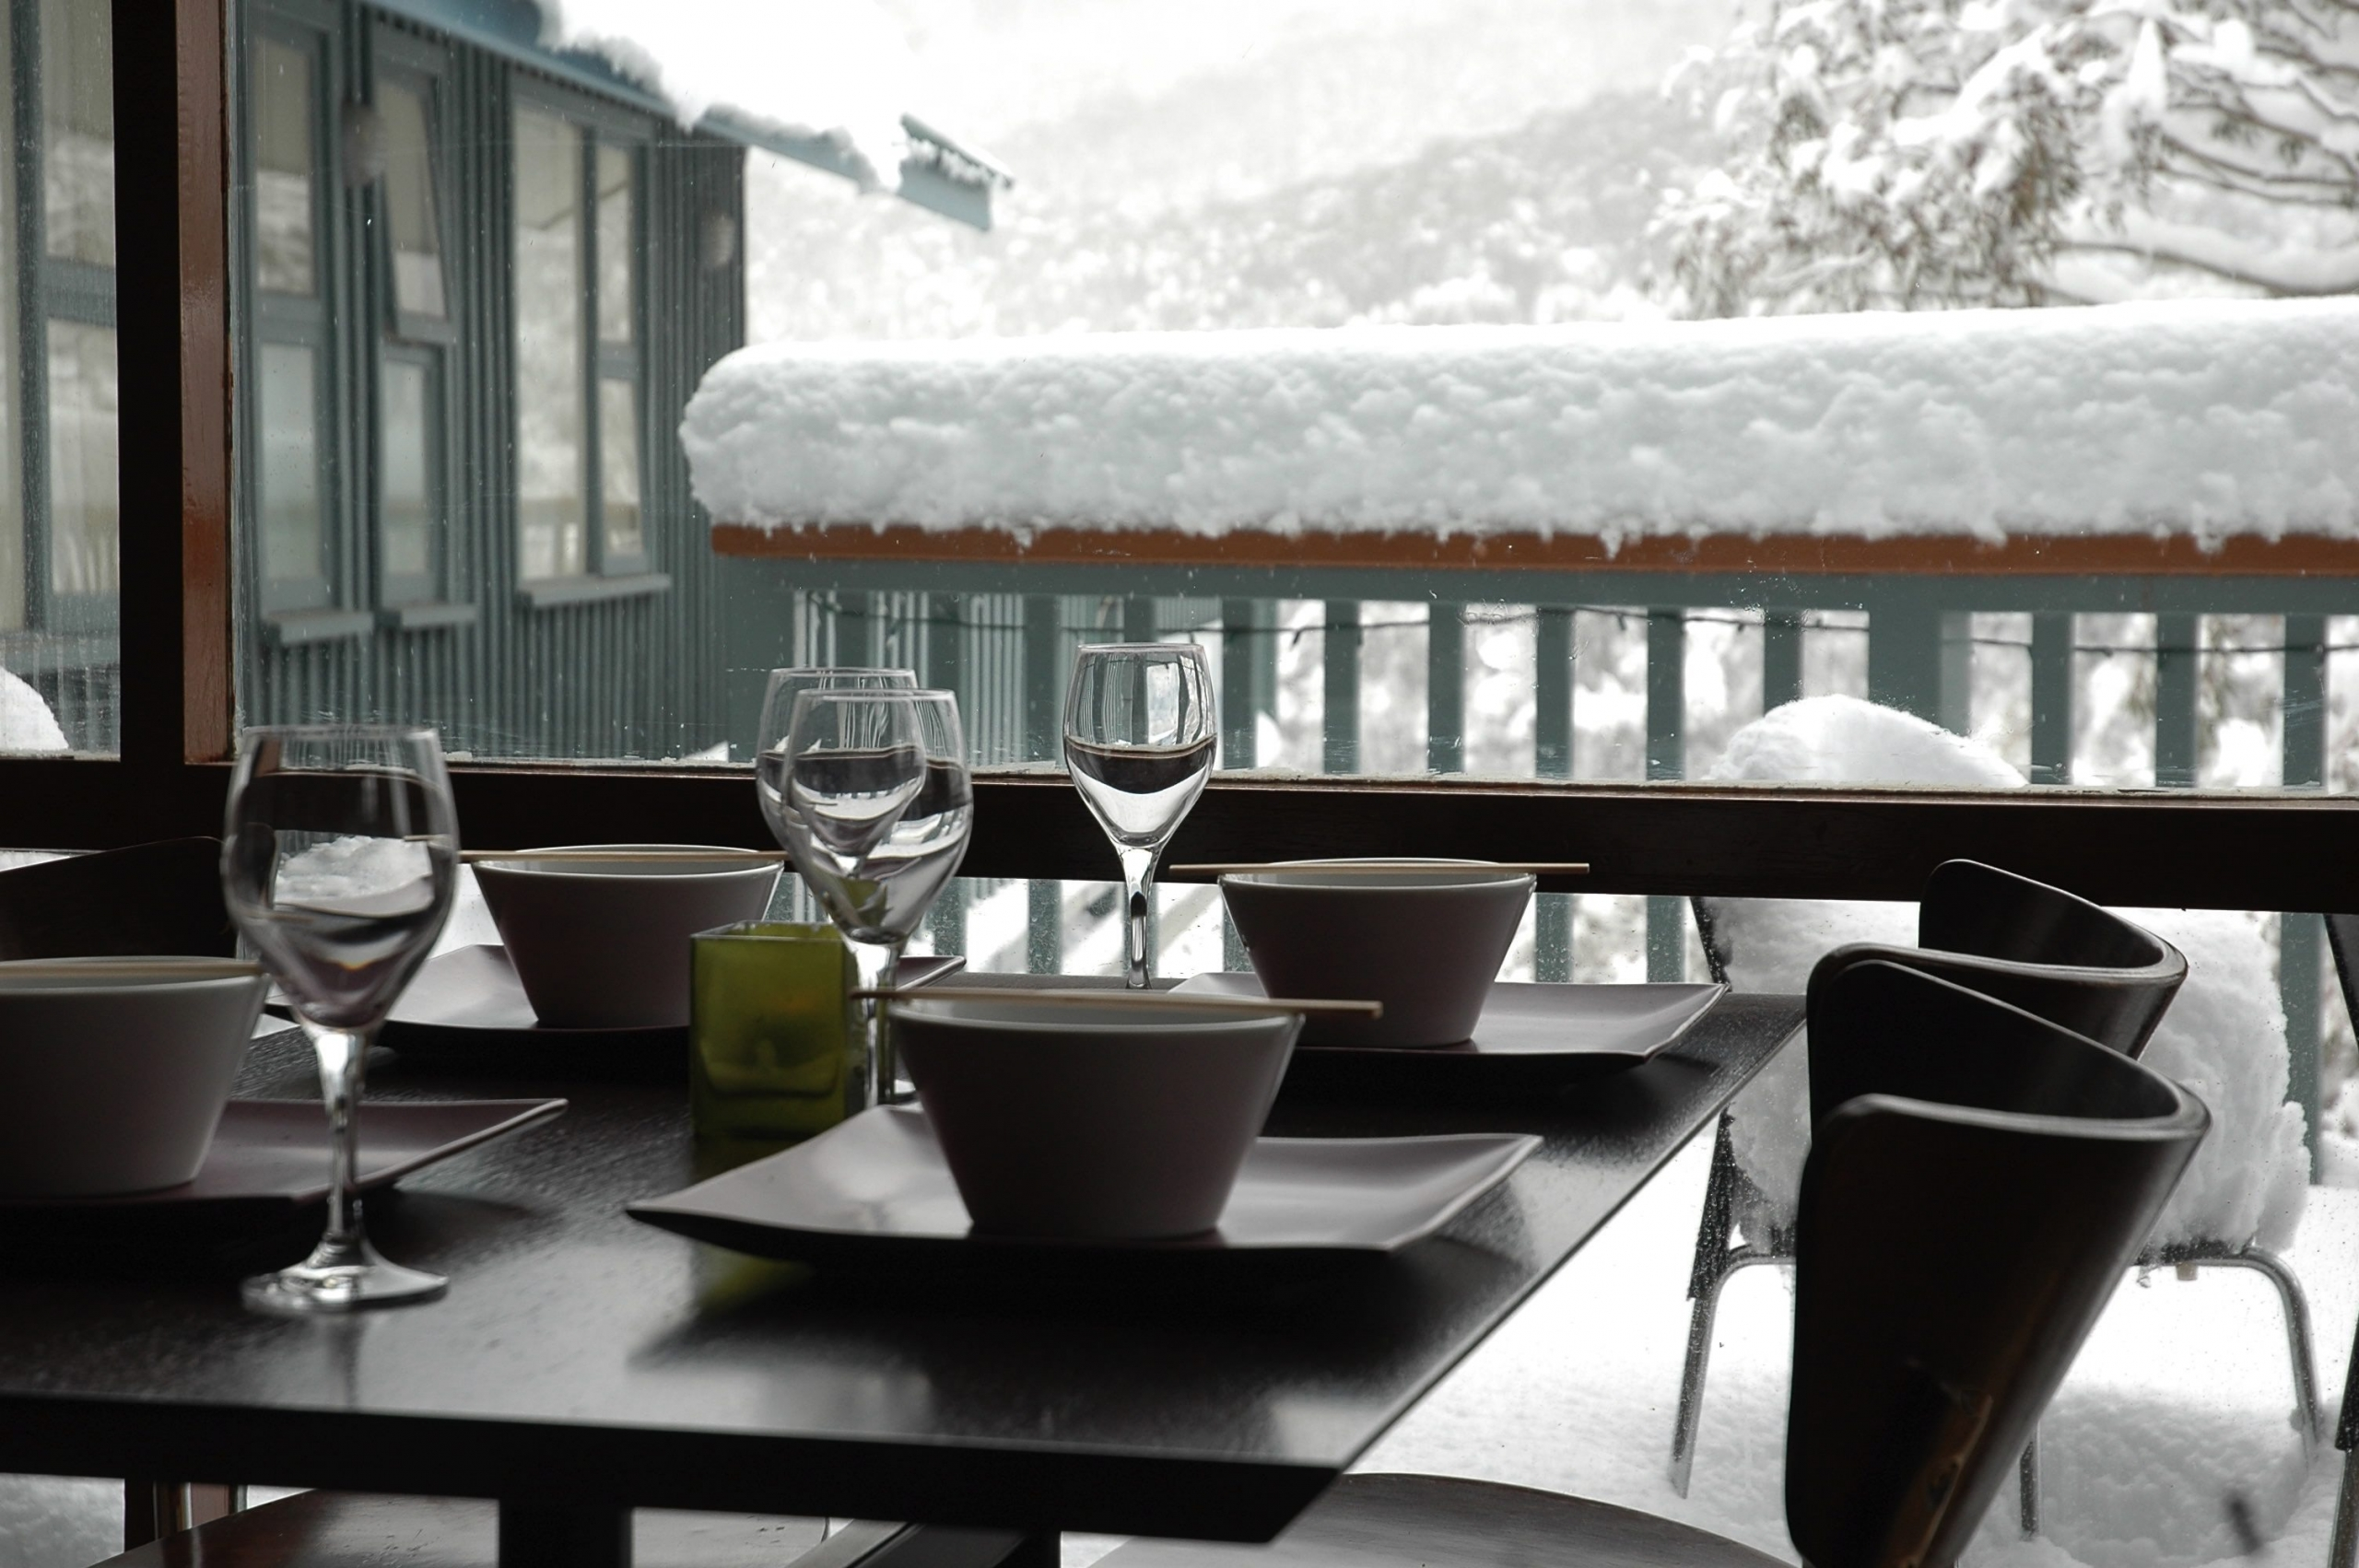 D2-Thredbo-Alpenhorn-Guest-House-BB-Hotel-Dining-Room-see-alphorn.com_.au-50-scaled